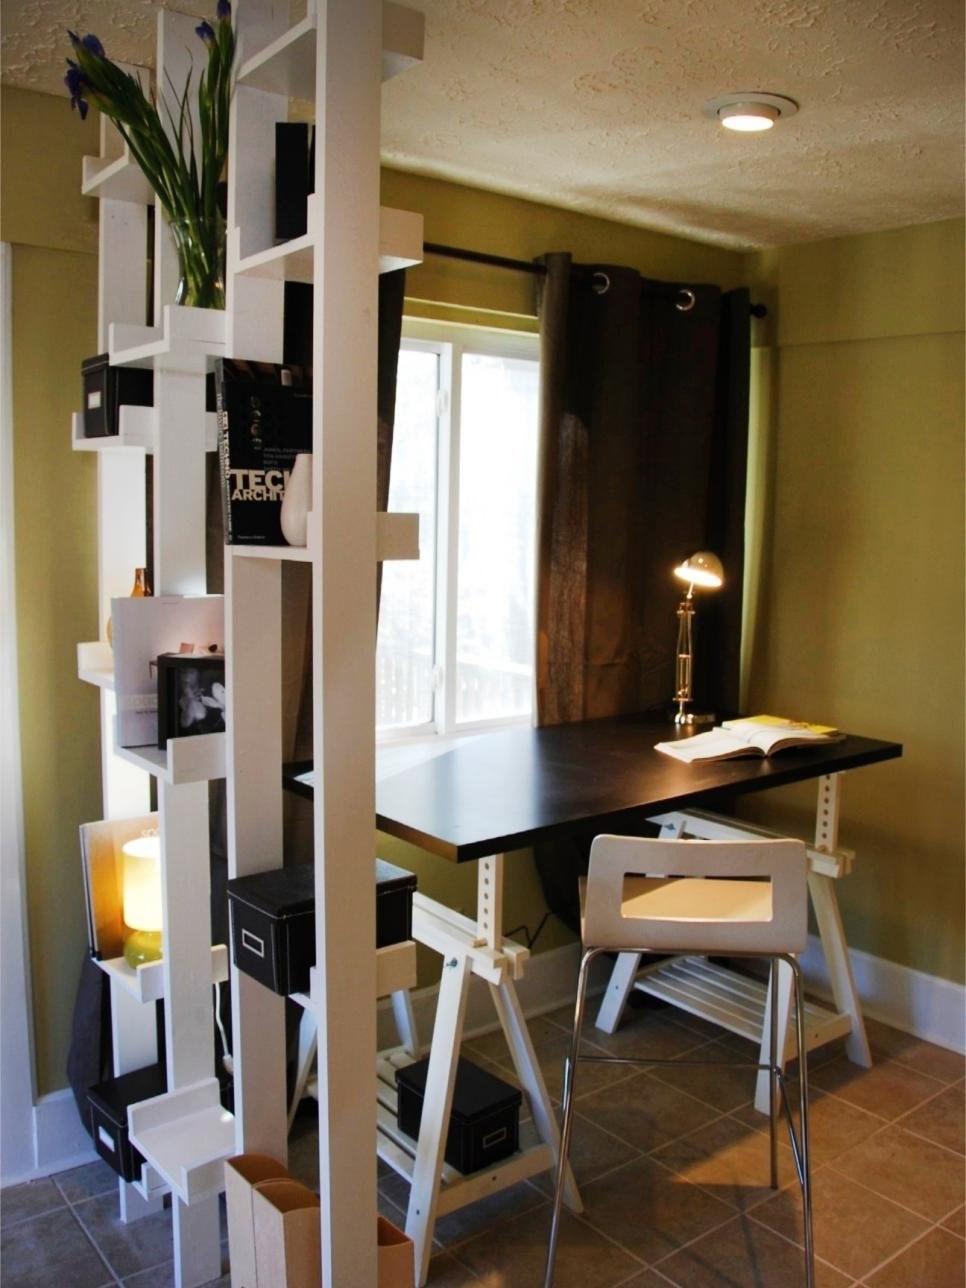 10 Amazing Home Office Ideas For Small Spaces home office small space ideas with home office small space ideas 2021